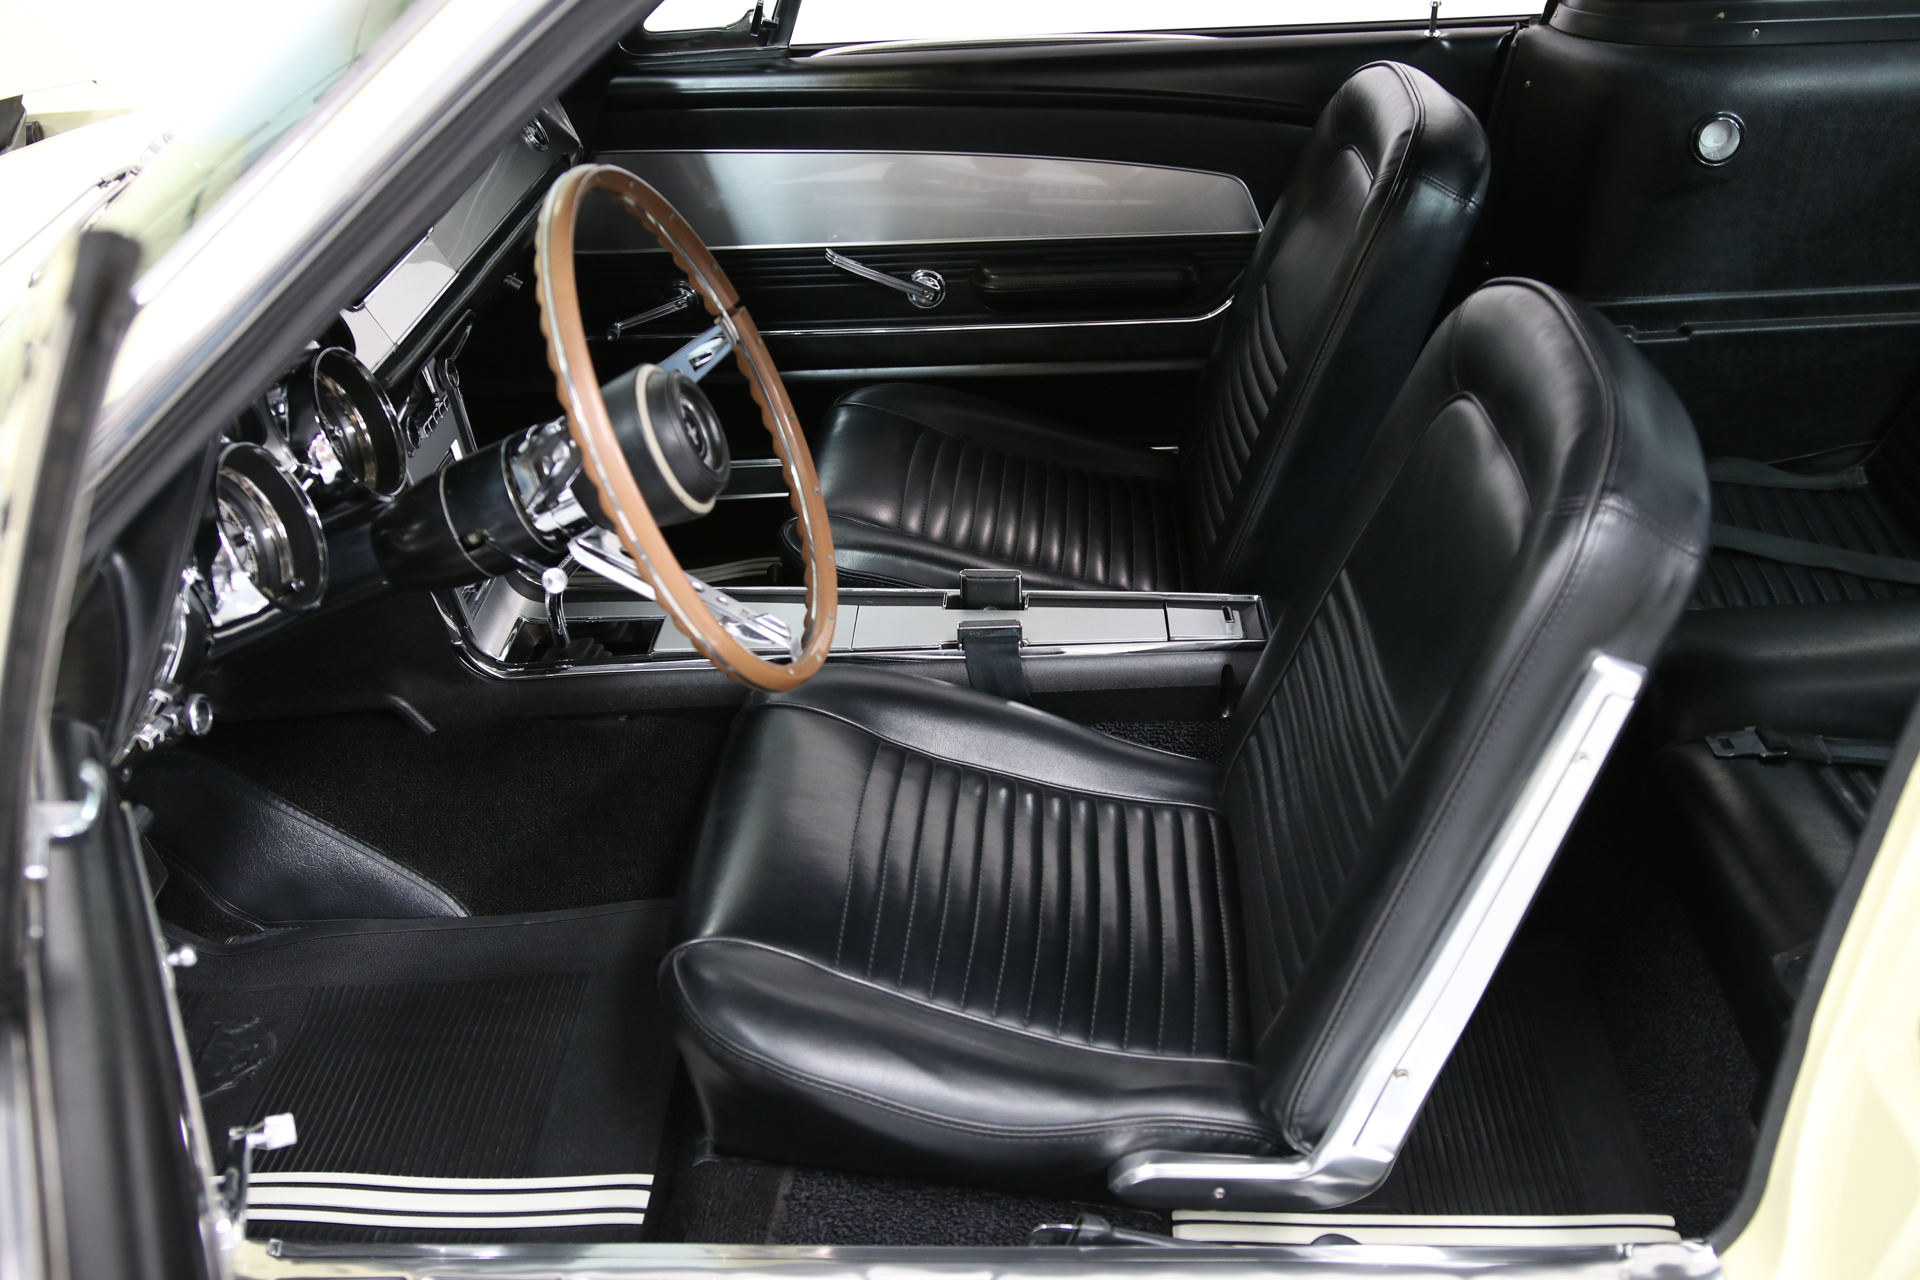 1967 mustang fastback gt 390 s code for 1967 mustang interior pictures